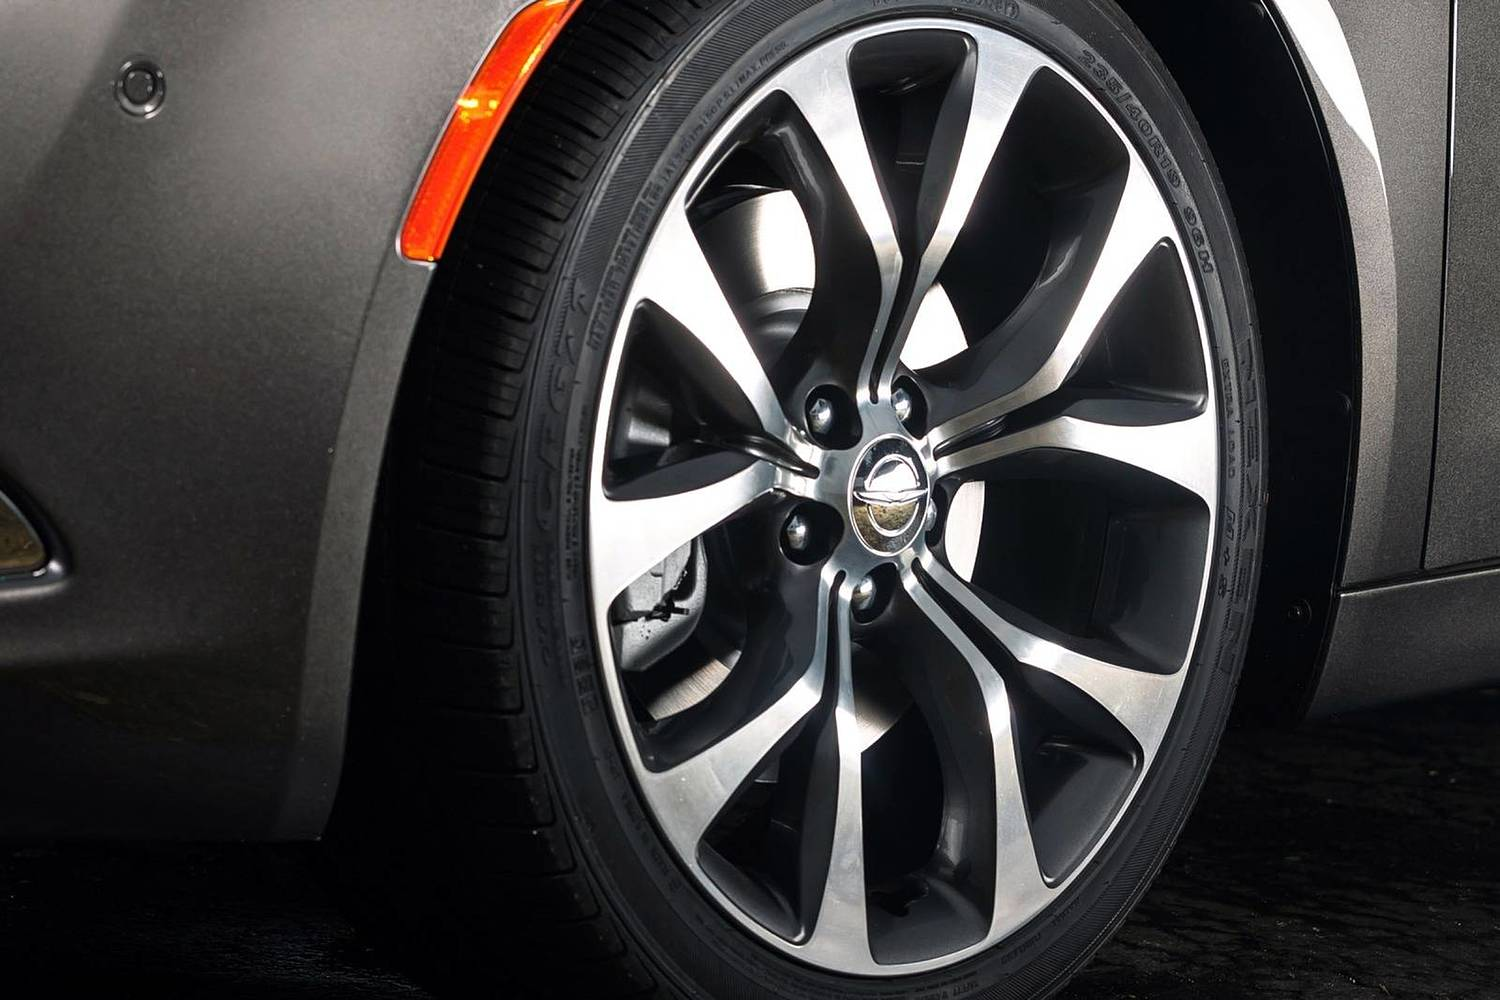 Chrysler 200 C Sedan Wheel (2015 model year shown)